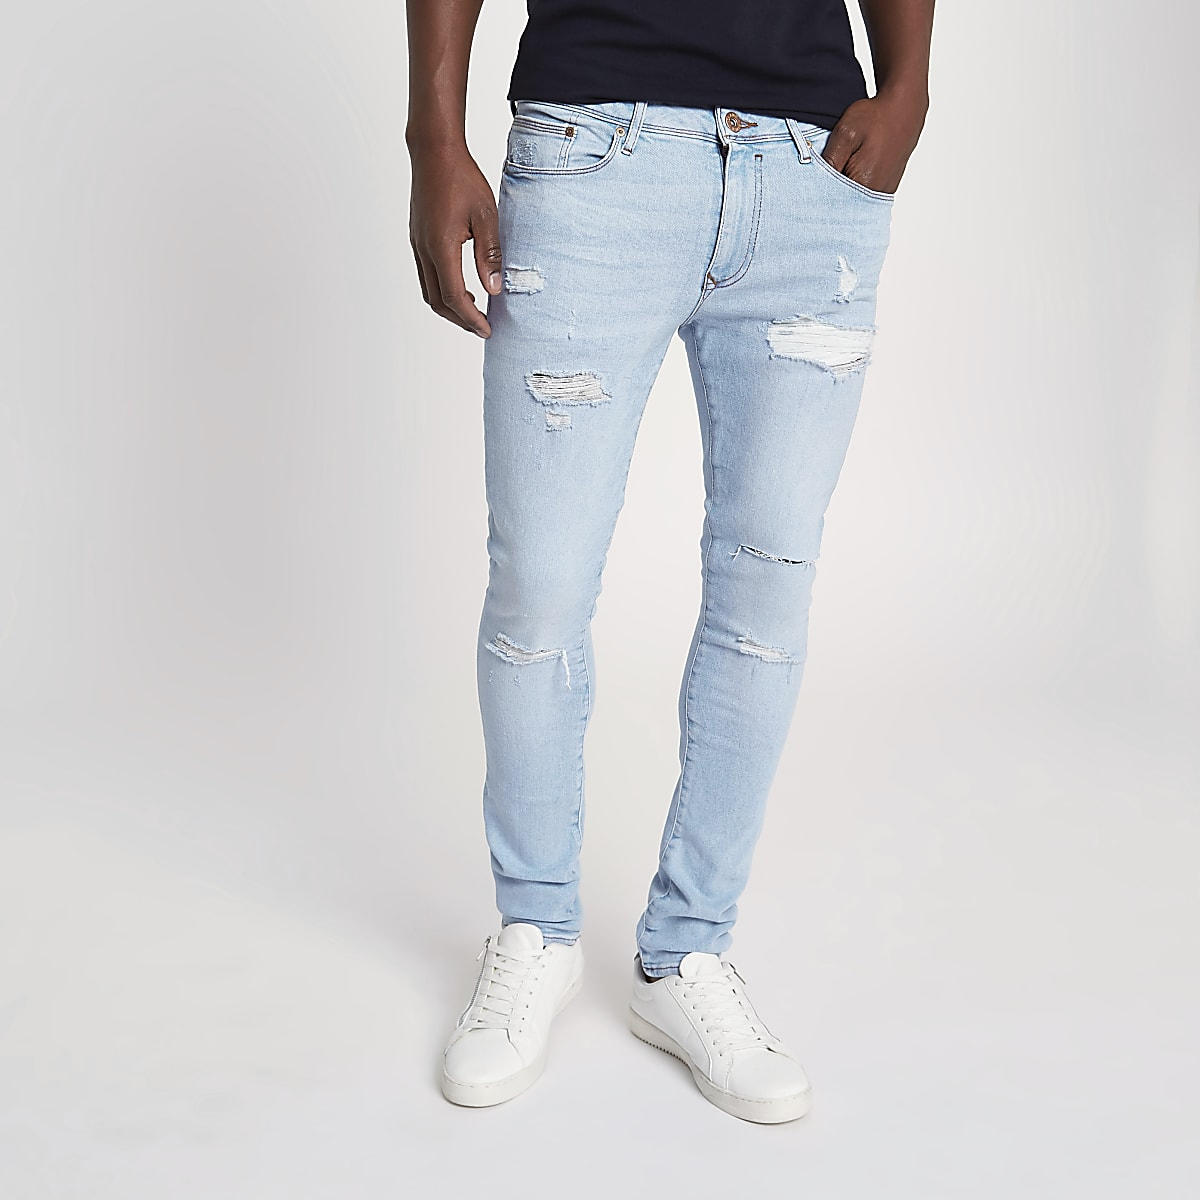 00a0ee73ca92 Light Blue Jeans Mens - Jeans Frenchafricana.Org 2018